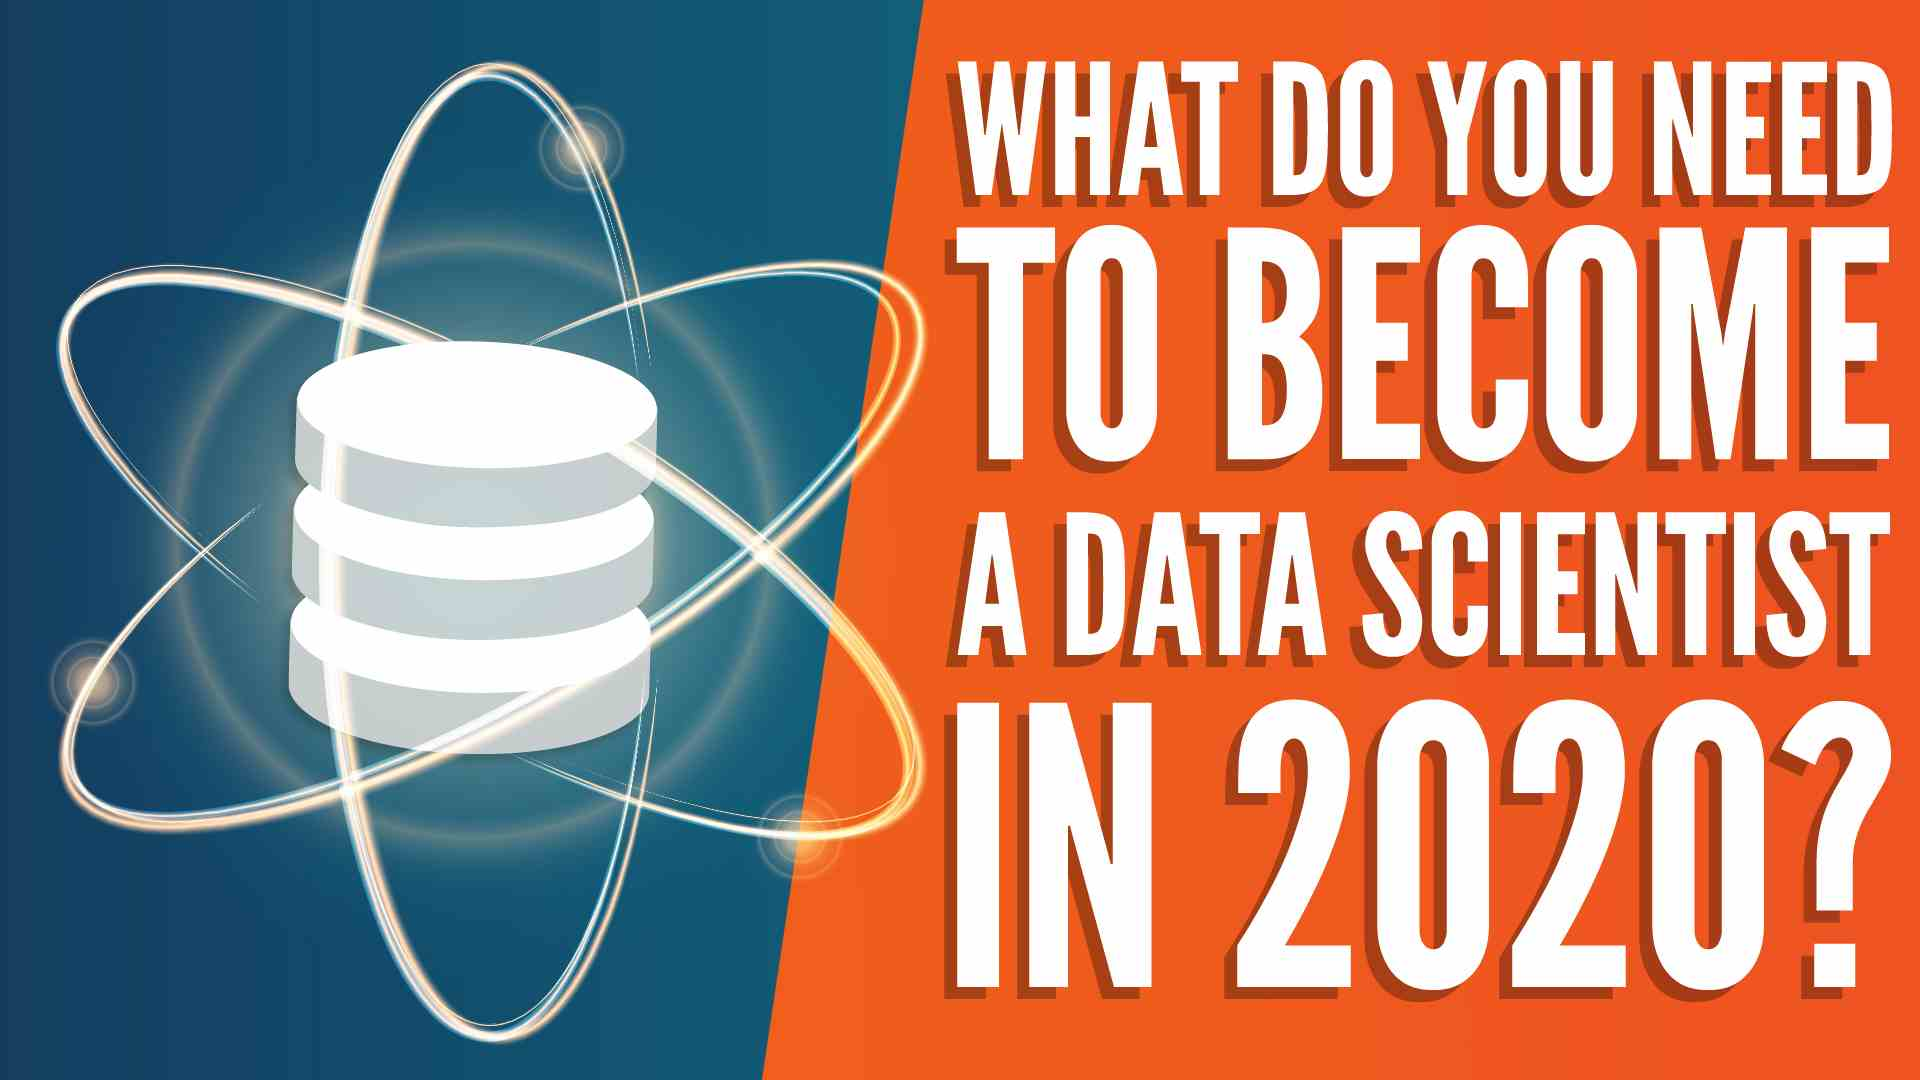 How to Become a Data Scientist in 2020 – Top Skills, Education, and Experience